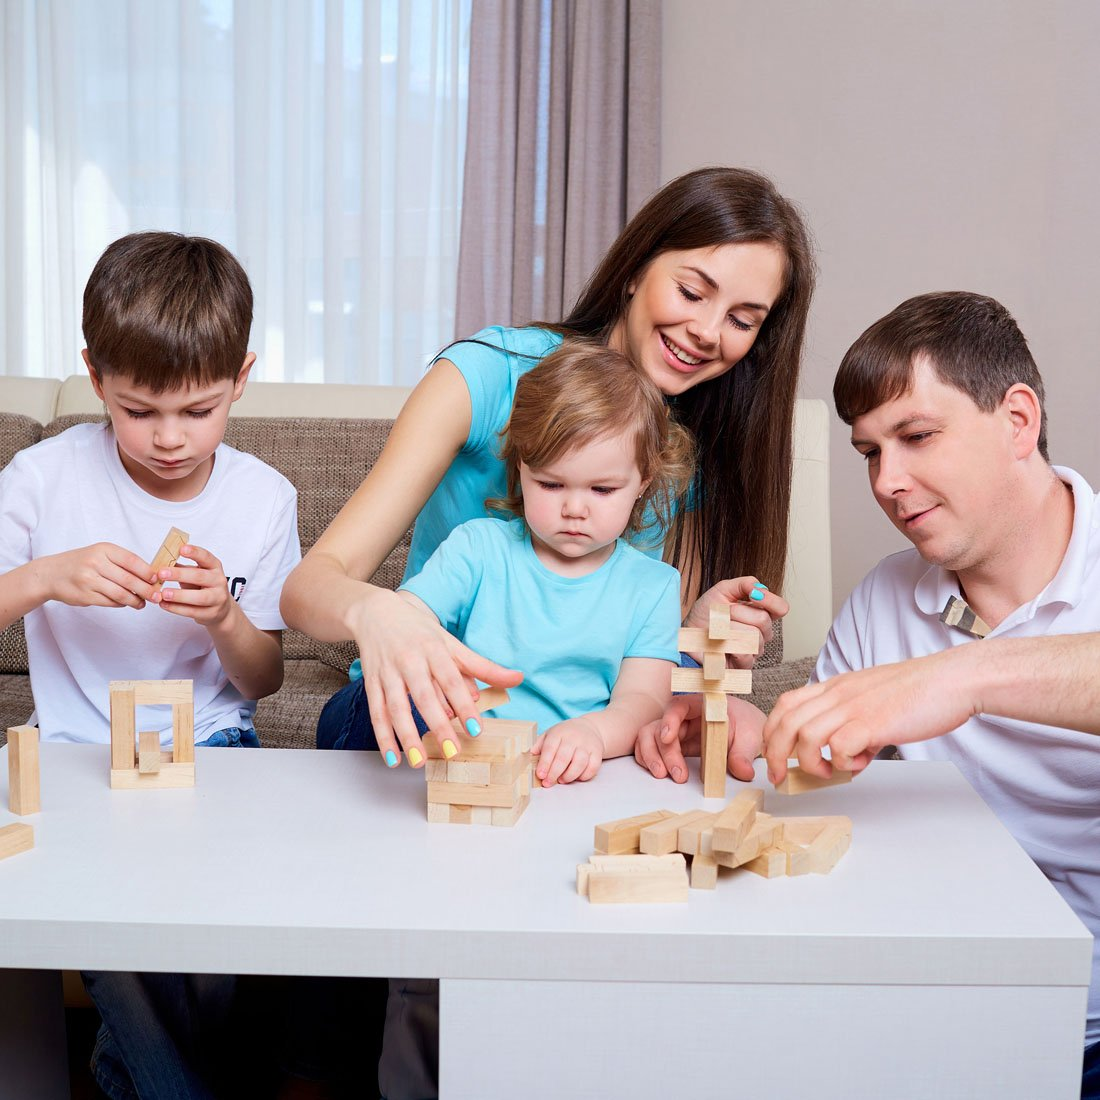 family-playing-building-with-blocks-on-table.jpg